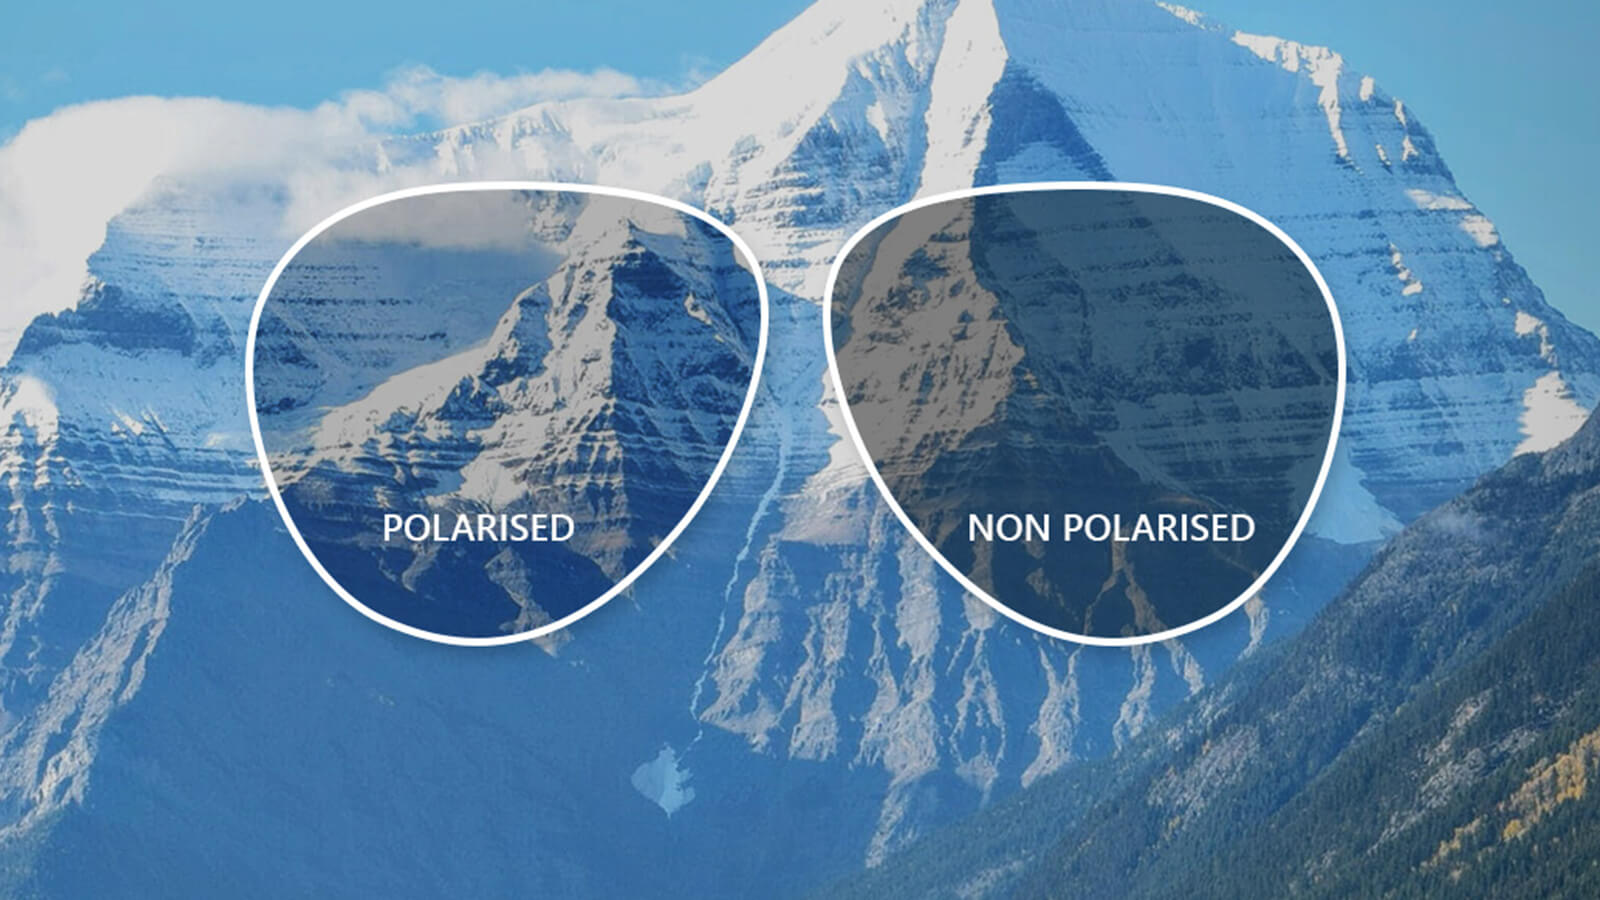 Are Polarized lenses bad for your eyes?